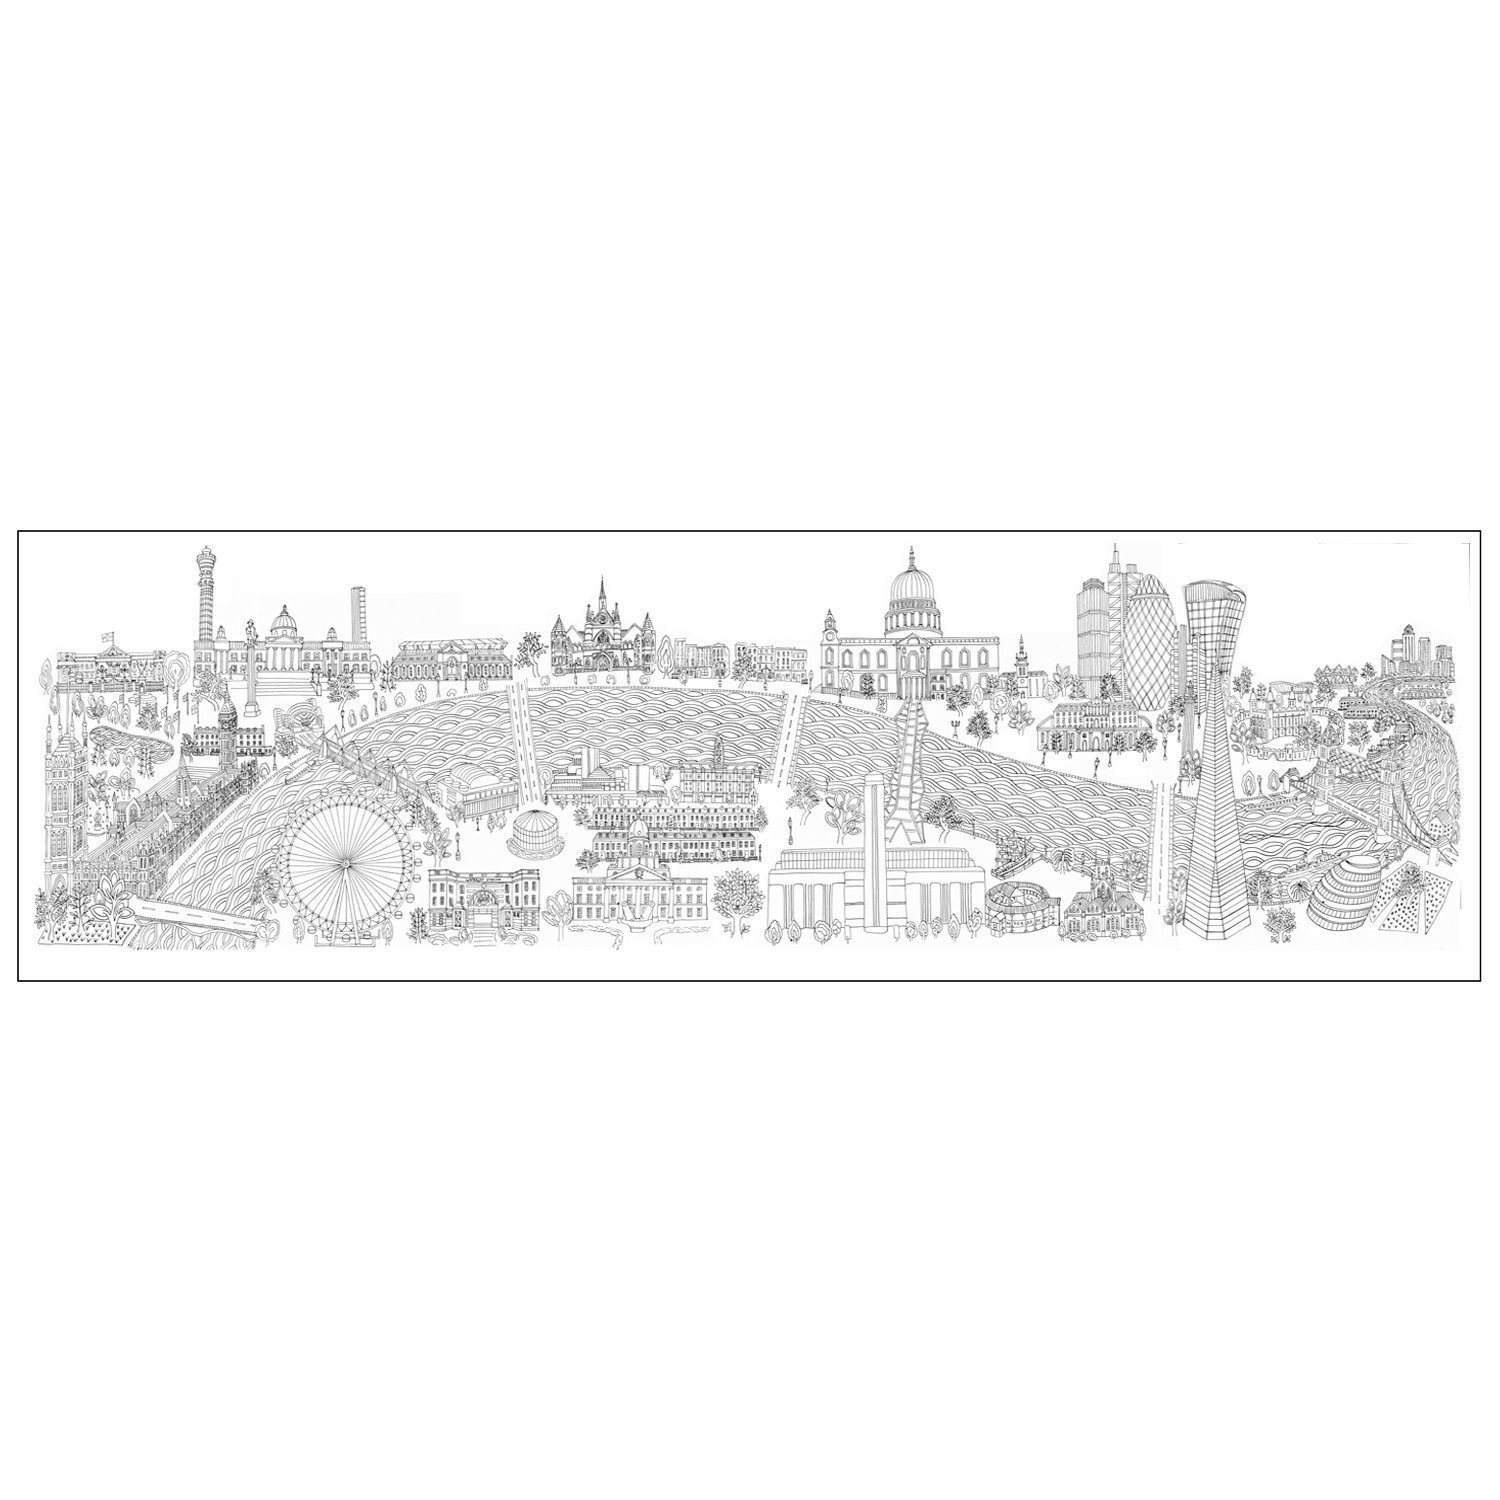 LONDON PANORAMA - LIMITED EDITION PRINTS Printed in the UK, using the highest quality archival paper and highest quality inks. Sizes available: Large – 1500 mm x 430 mm. Edition of 50 Medium – 610 mm x 220 mm. Edition of 250